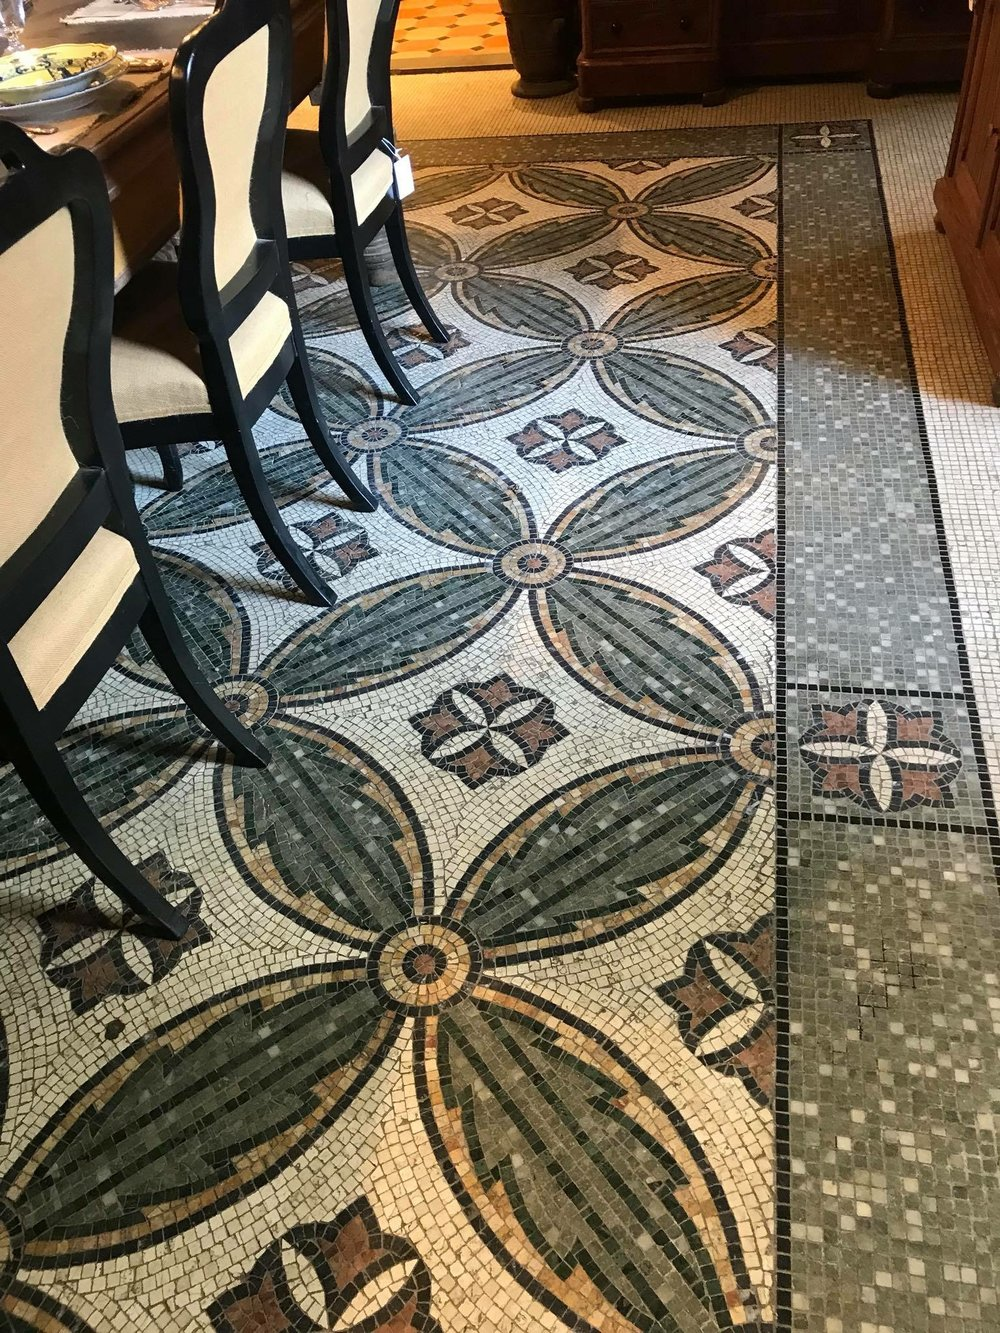 One of the incredible floors featured at    Riccardo Barthel    - bellisimo pavimento! (beautiful floor in Italian)